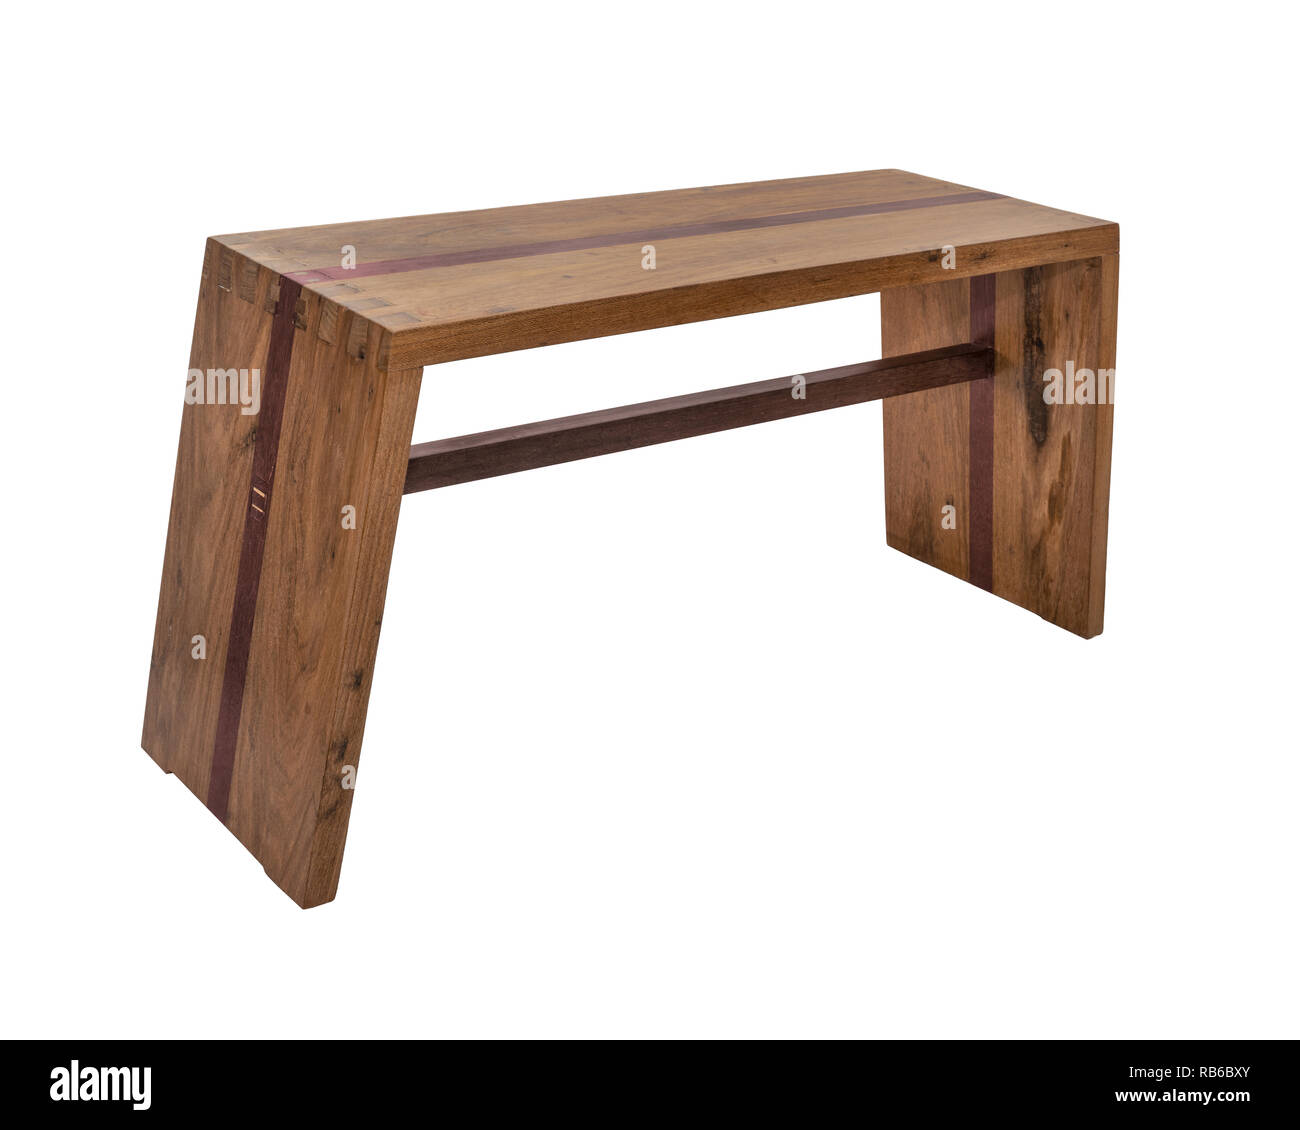 Bench. Wooden. of rough planks and logs. rustic bench of ecological materials - Stock Image